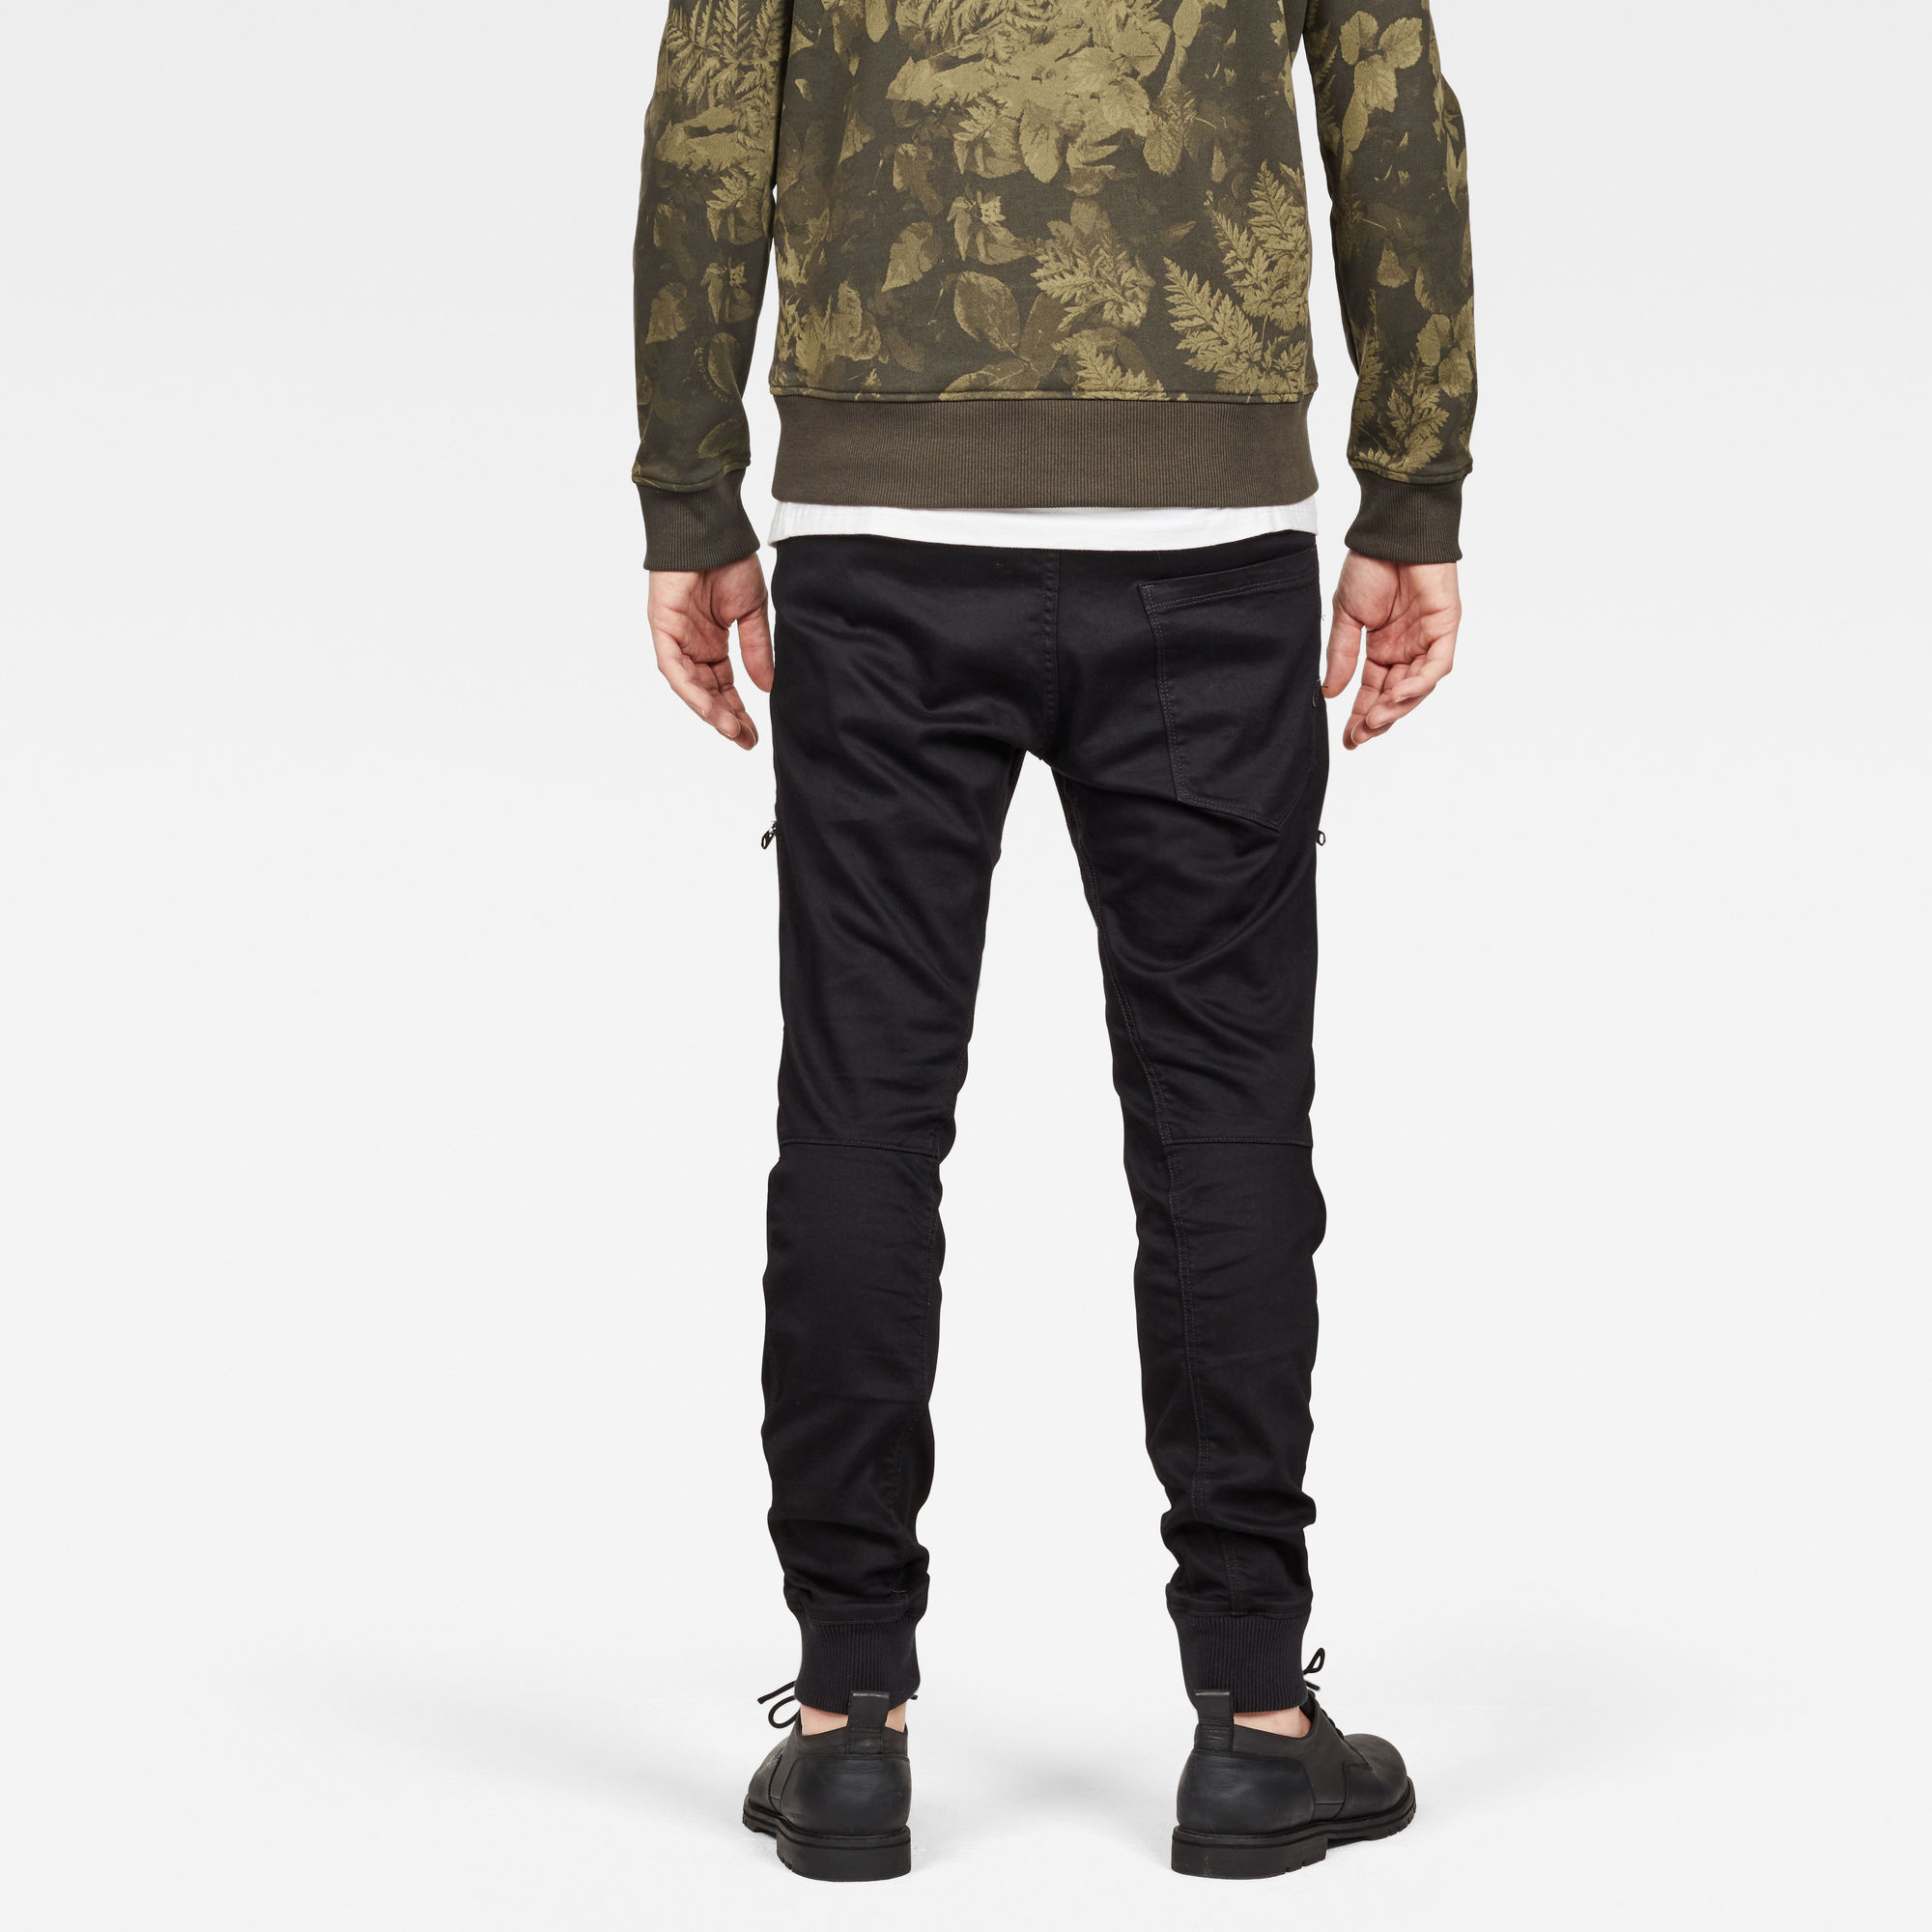 G-Star RAW Air Defence Sport Trainingsbroek